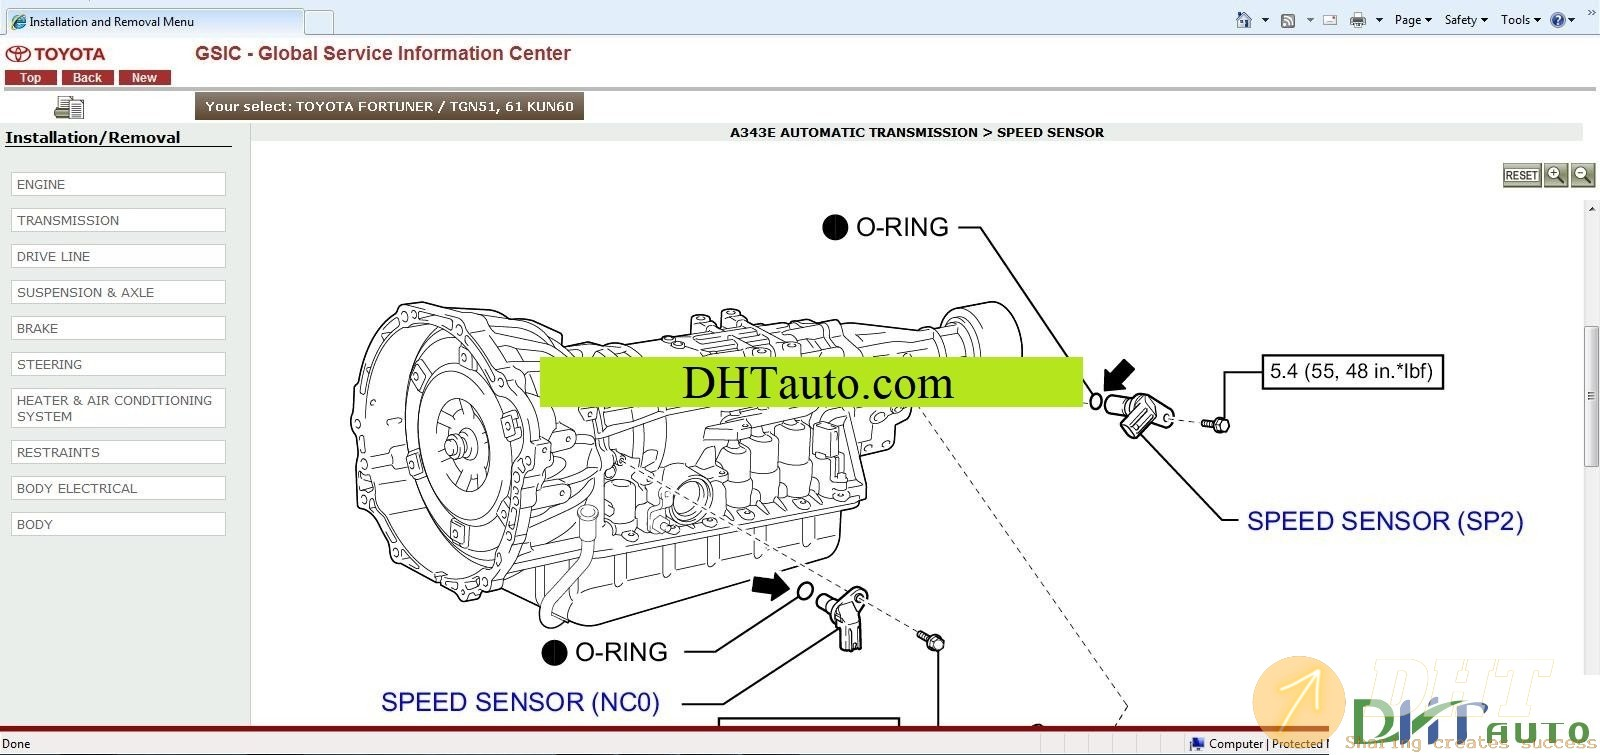 Toyota-Workshop-Manual-DVD-Full-2014-2018 13.jpg